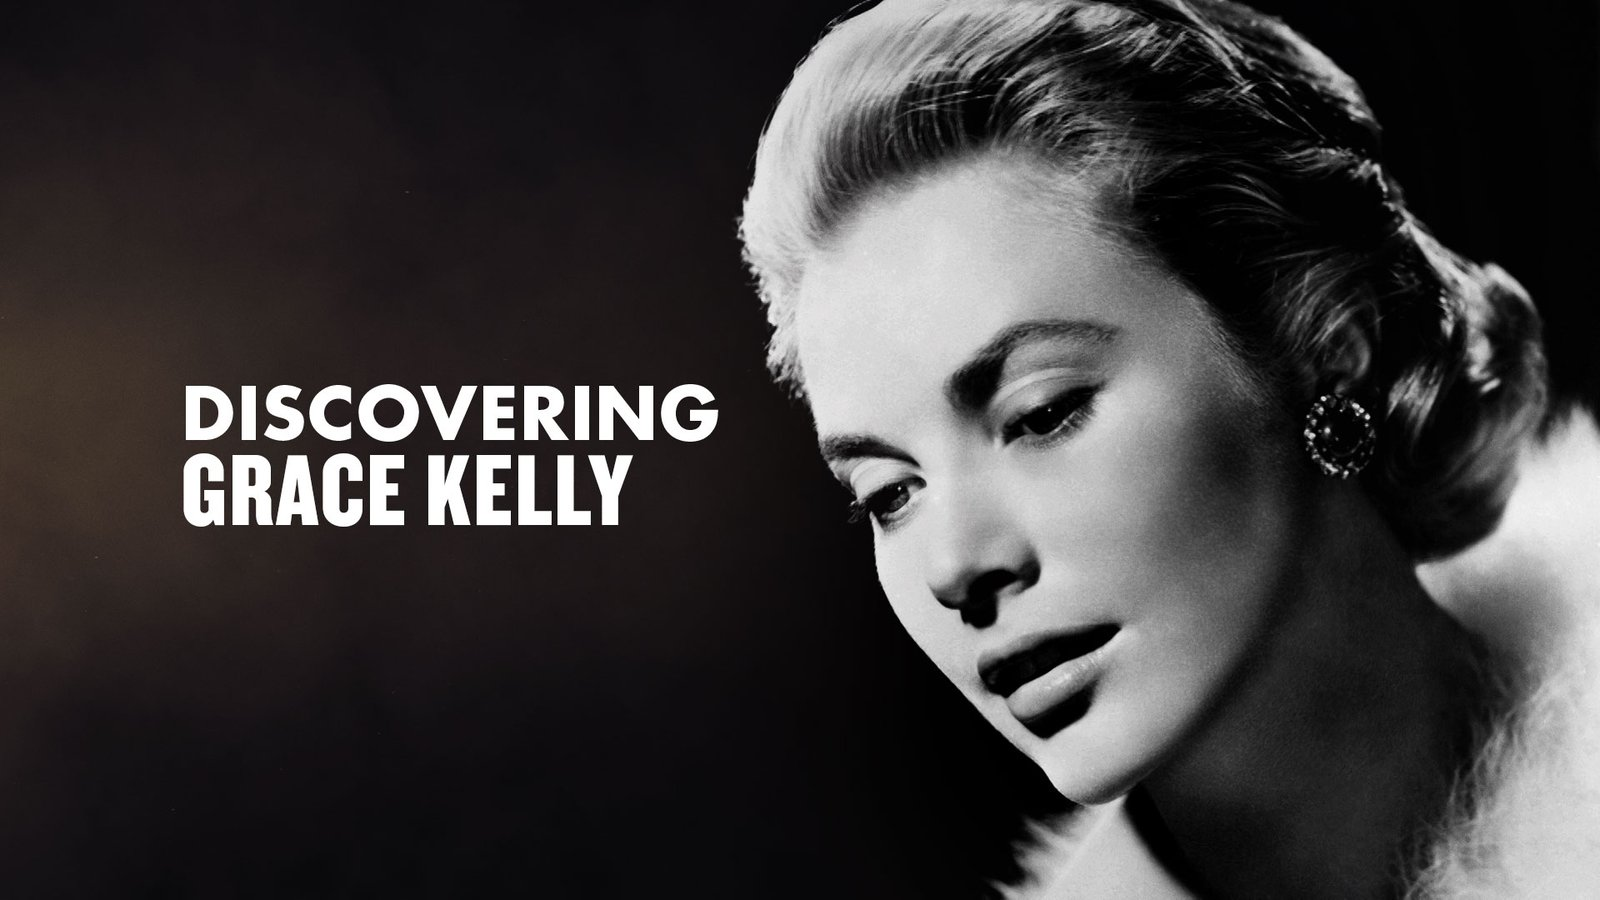 Discovering Grace Kelly